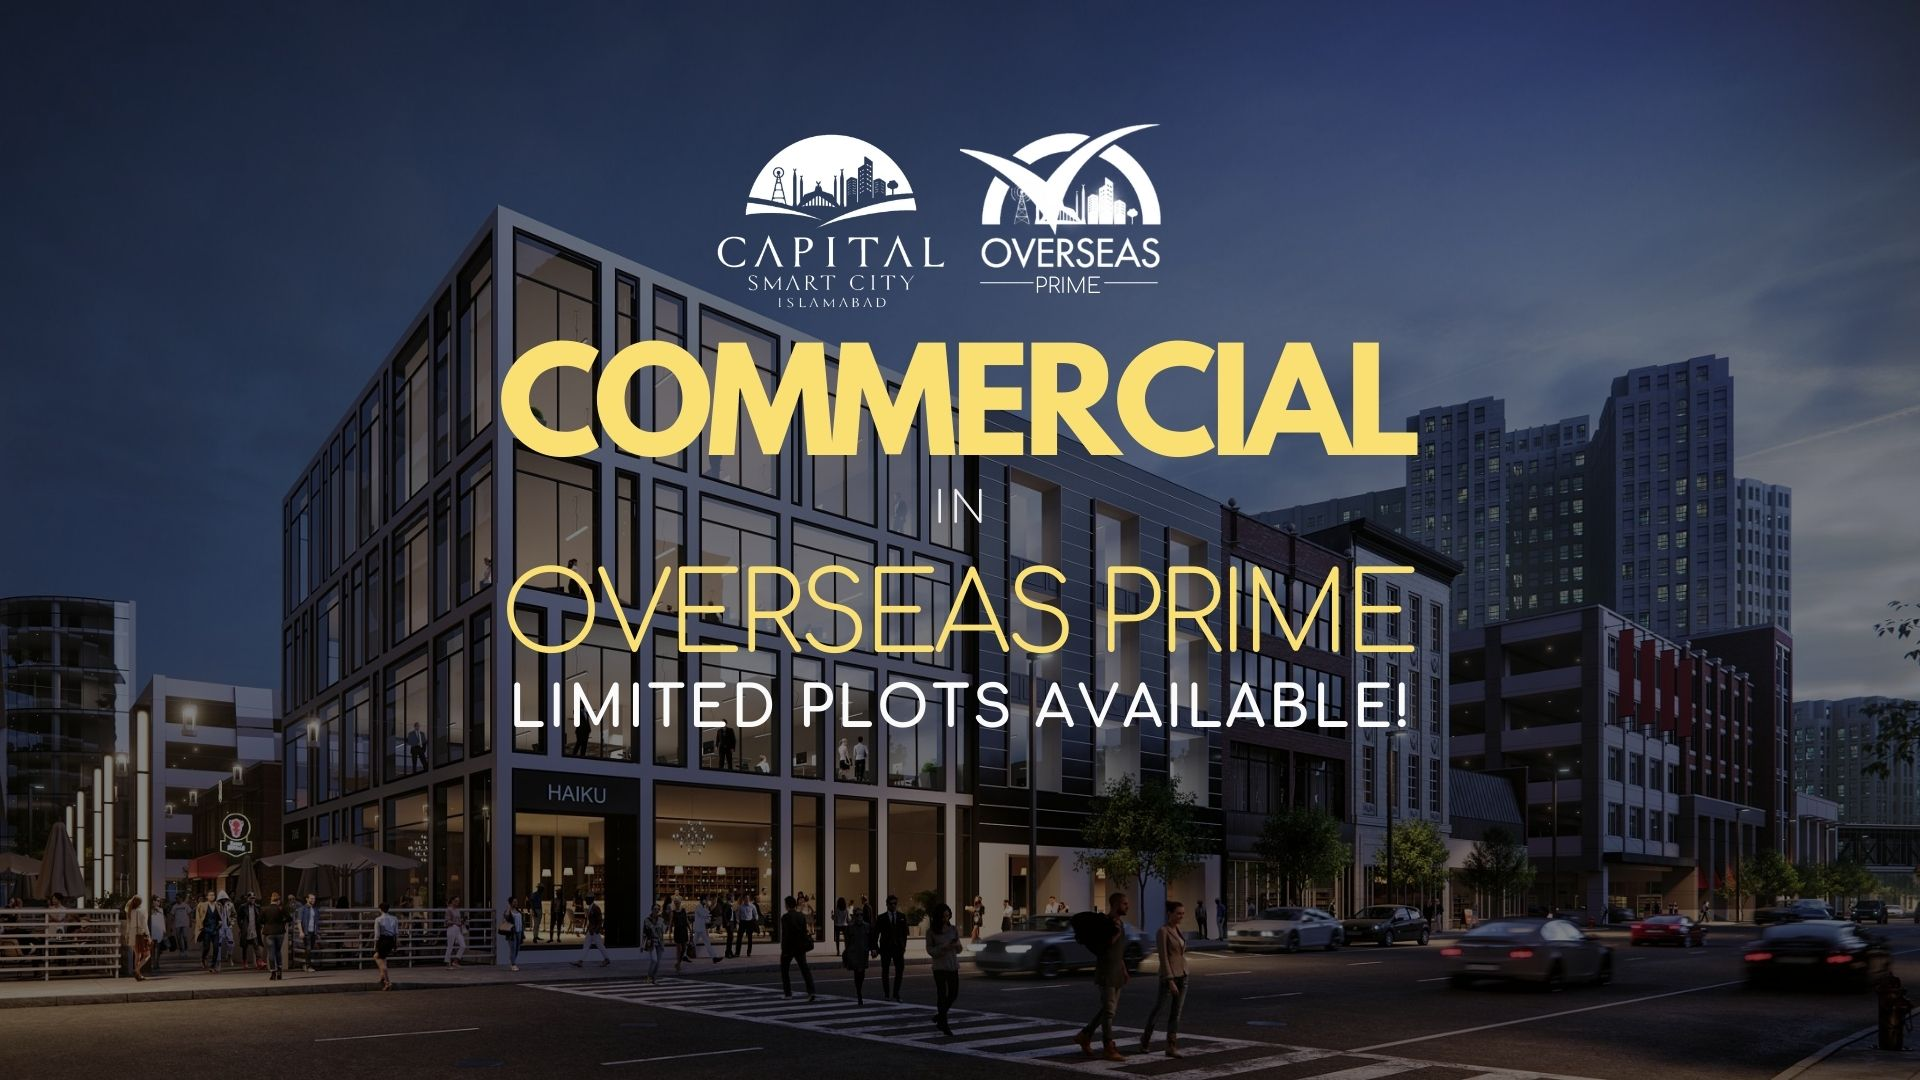 commercial plot launched in overseas prime - special discount